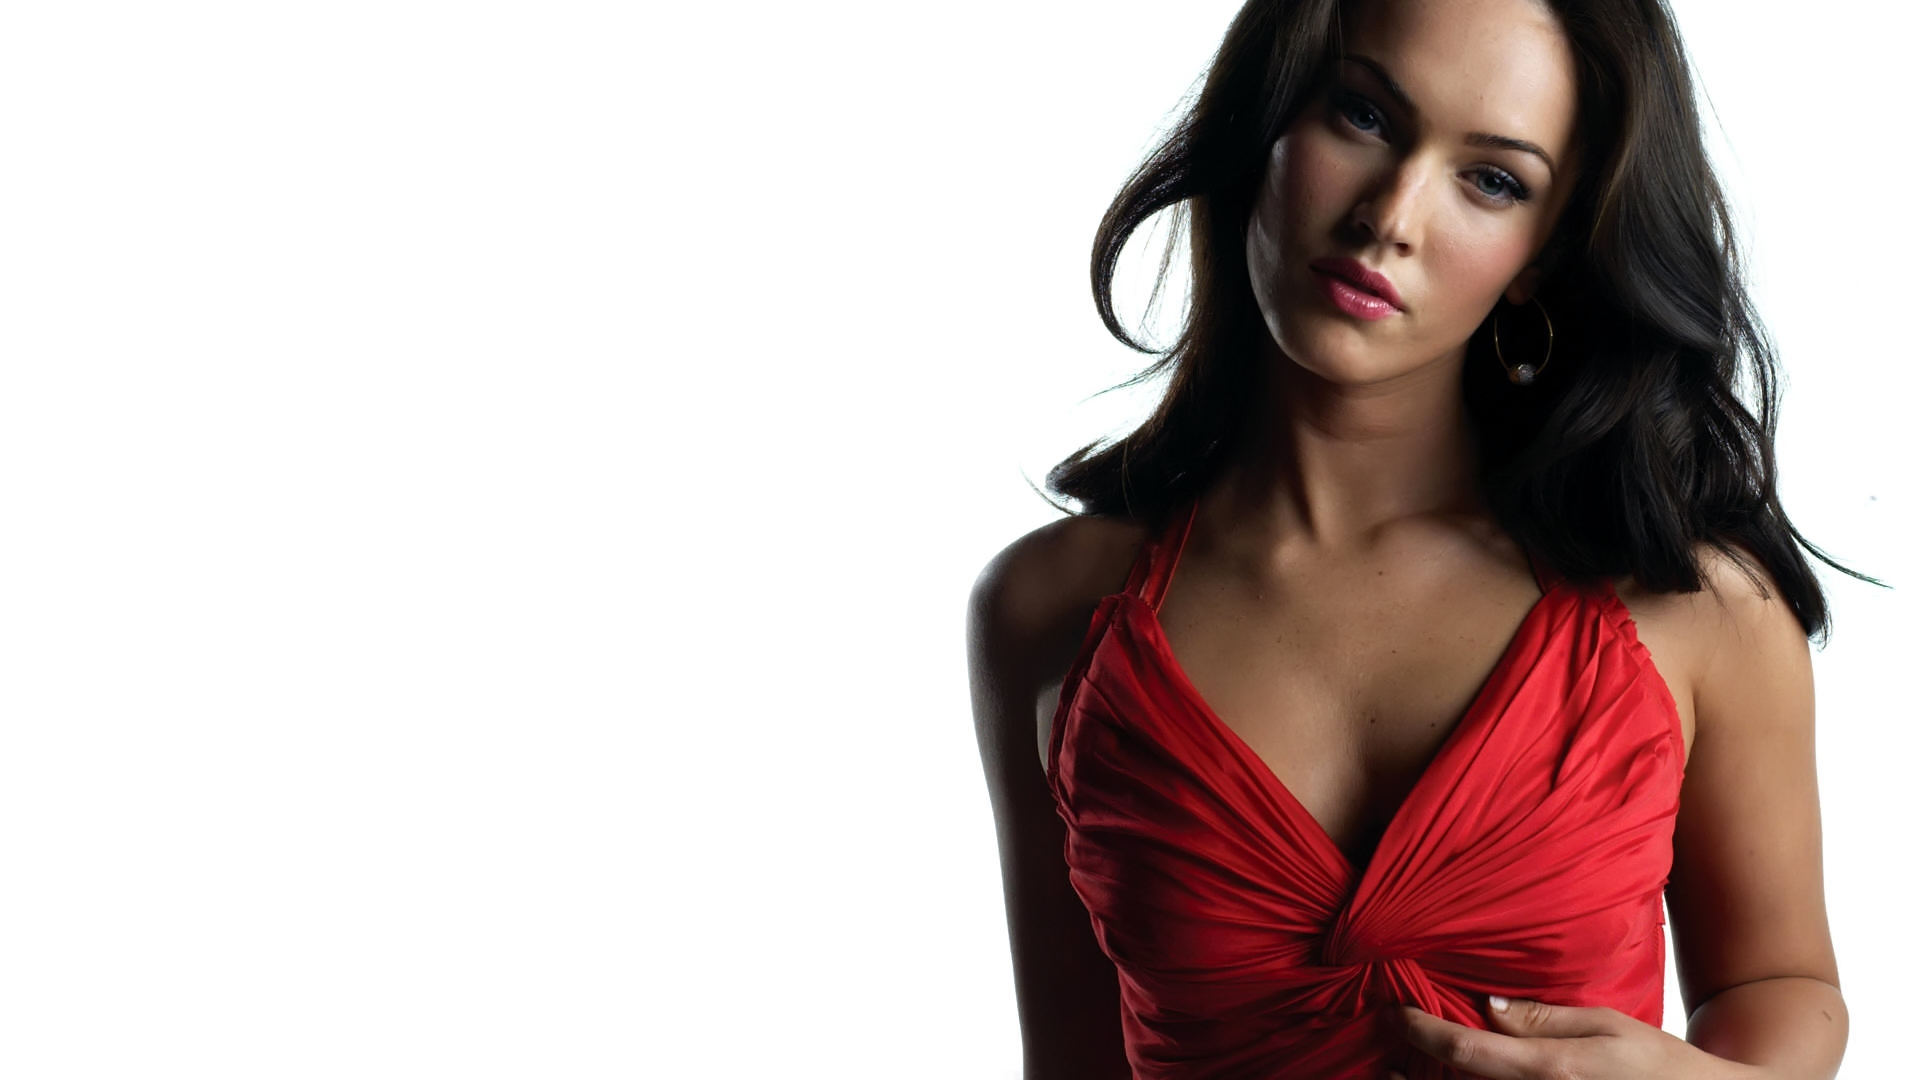 Megan Fox wallpaper   244062 1920x1080